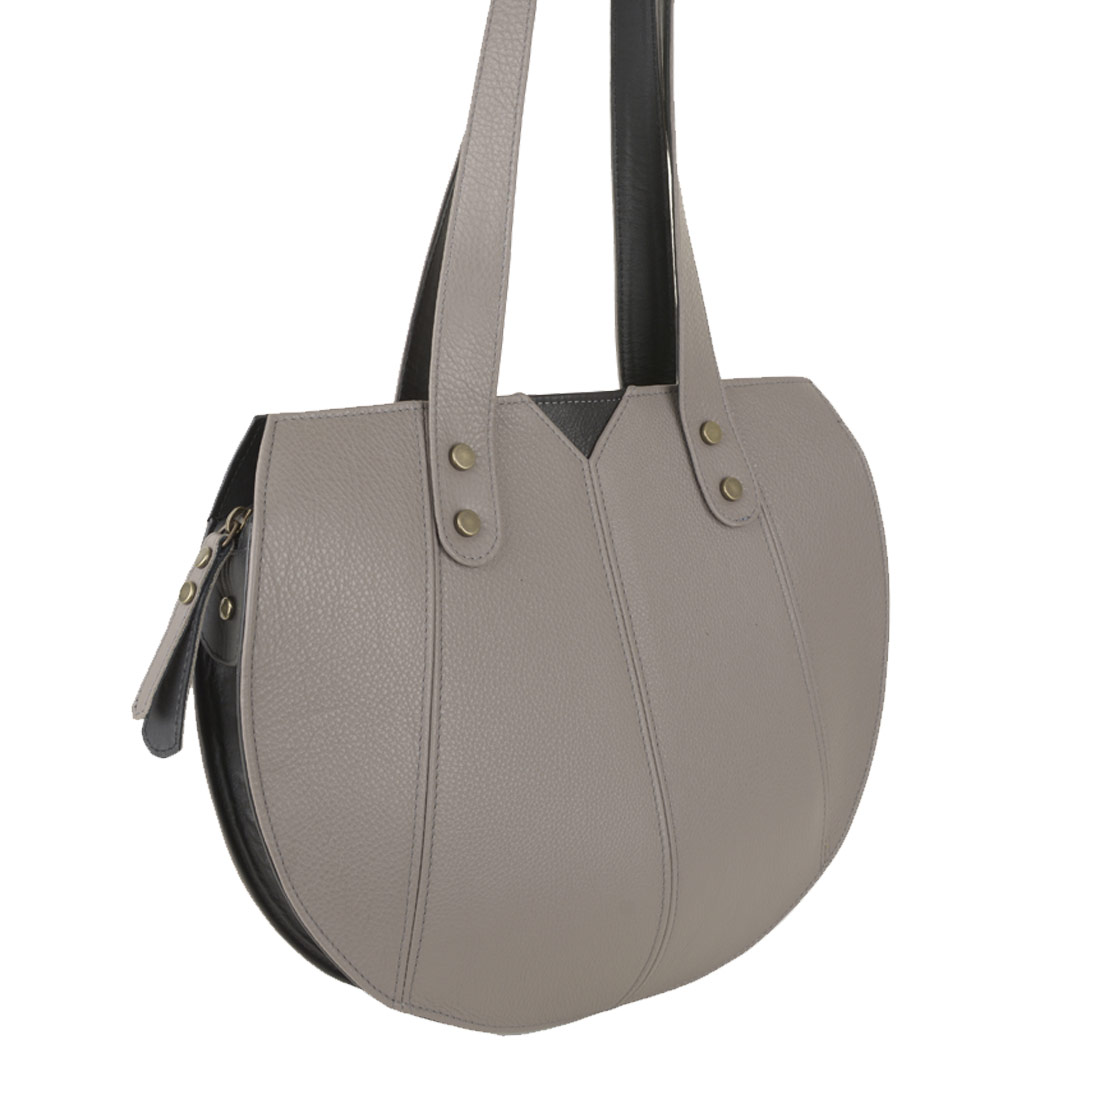 Carrie Zinco Leather Shoulder Bag